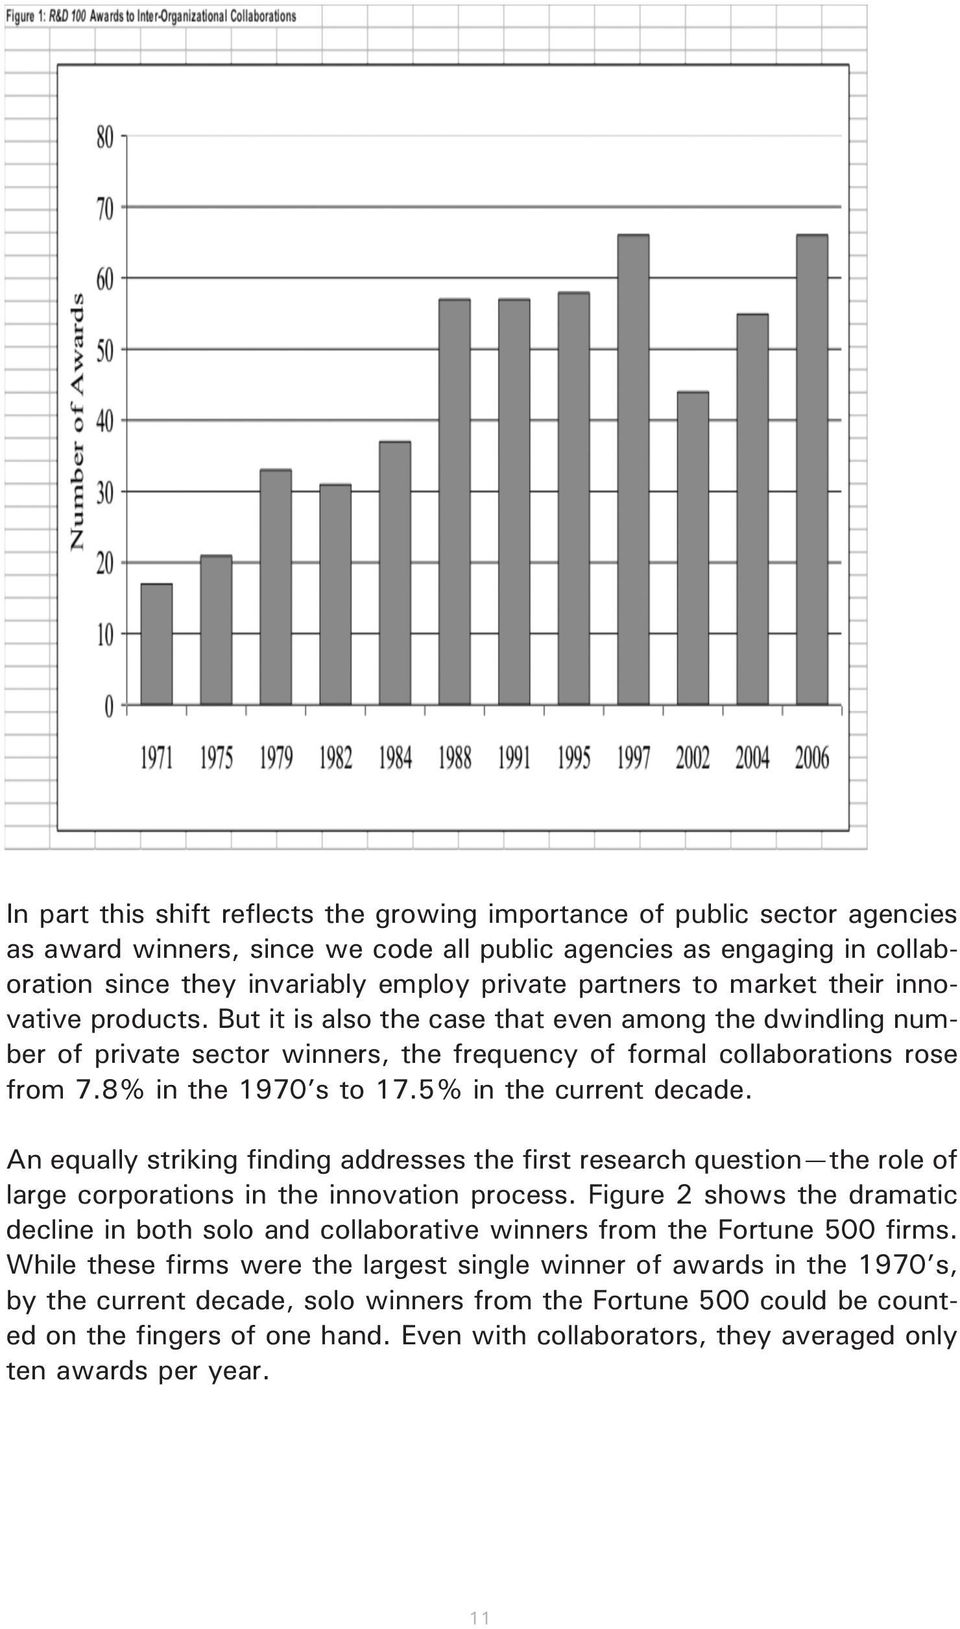 8% in the 97 s to 7.5% in the current decade. An equally striking finding addresses the first research question the role of large corporations in the innovation process.